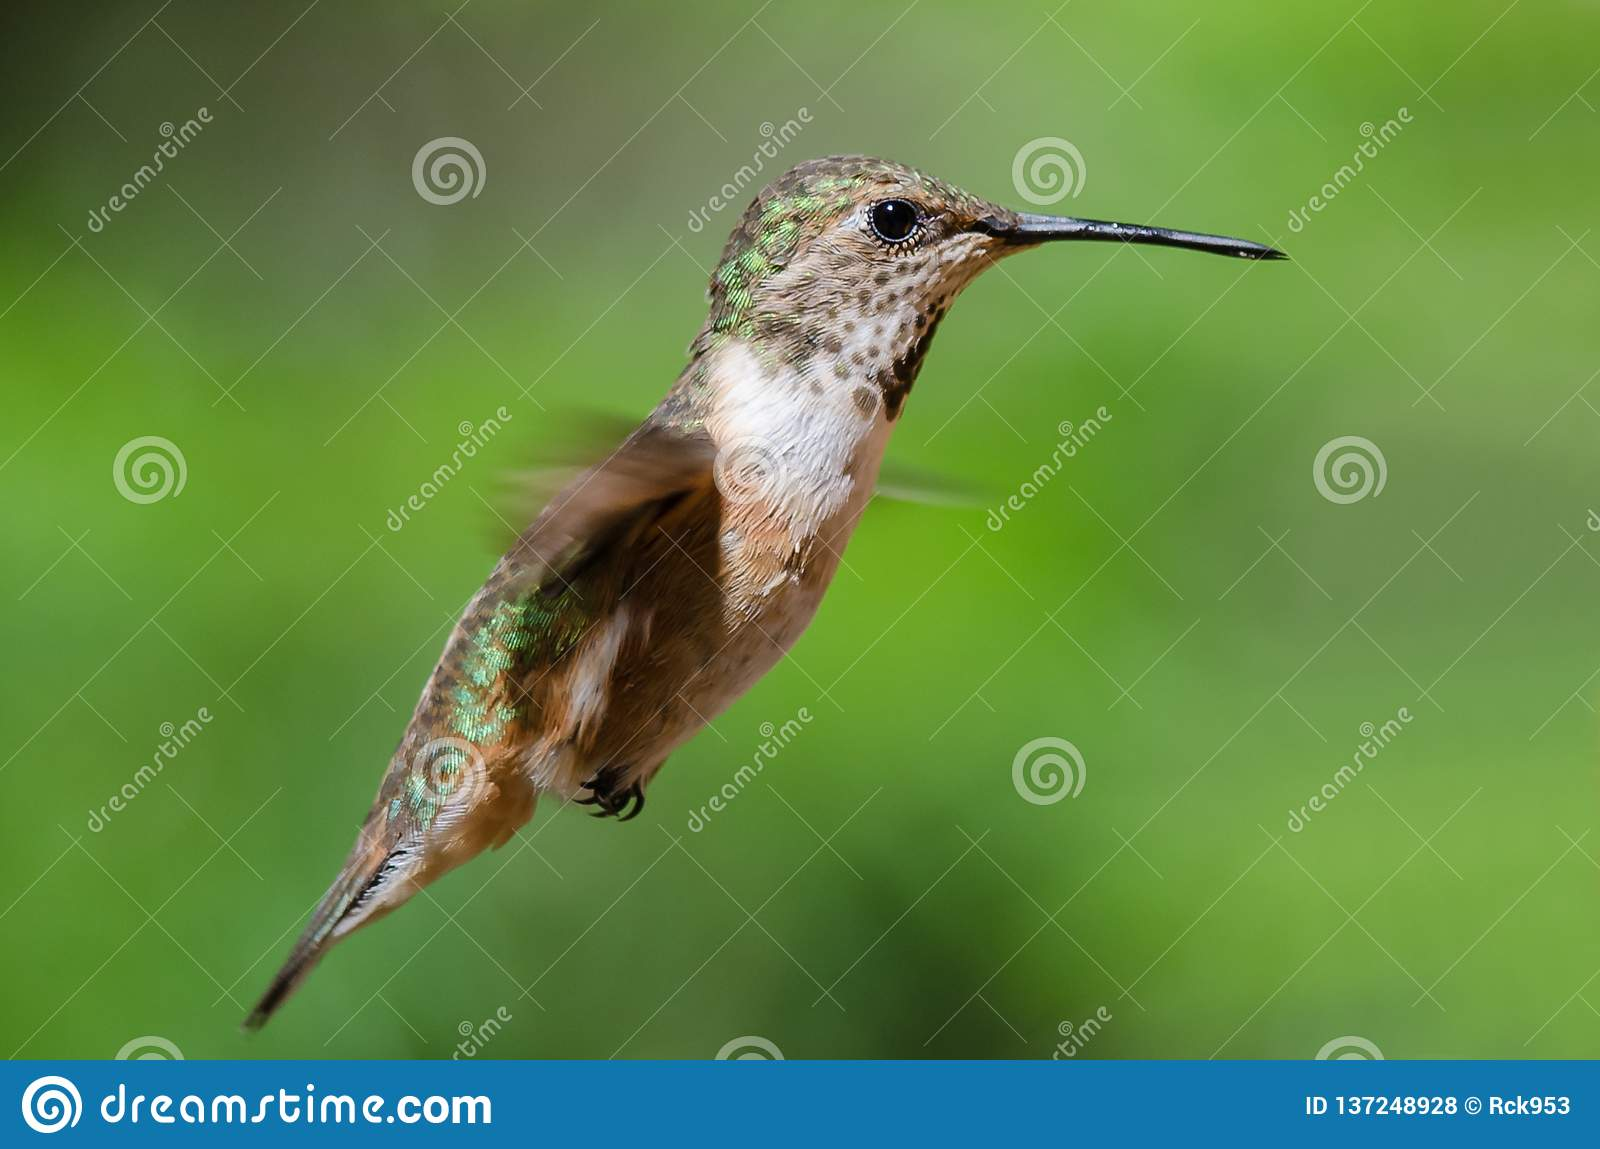 Adorable Little Rufous Hummingbird Hovering in Flight Deep in the Forest